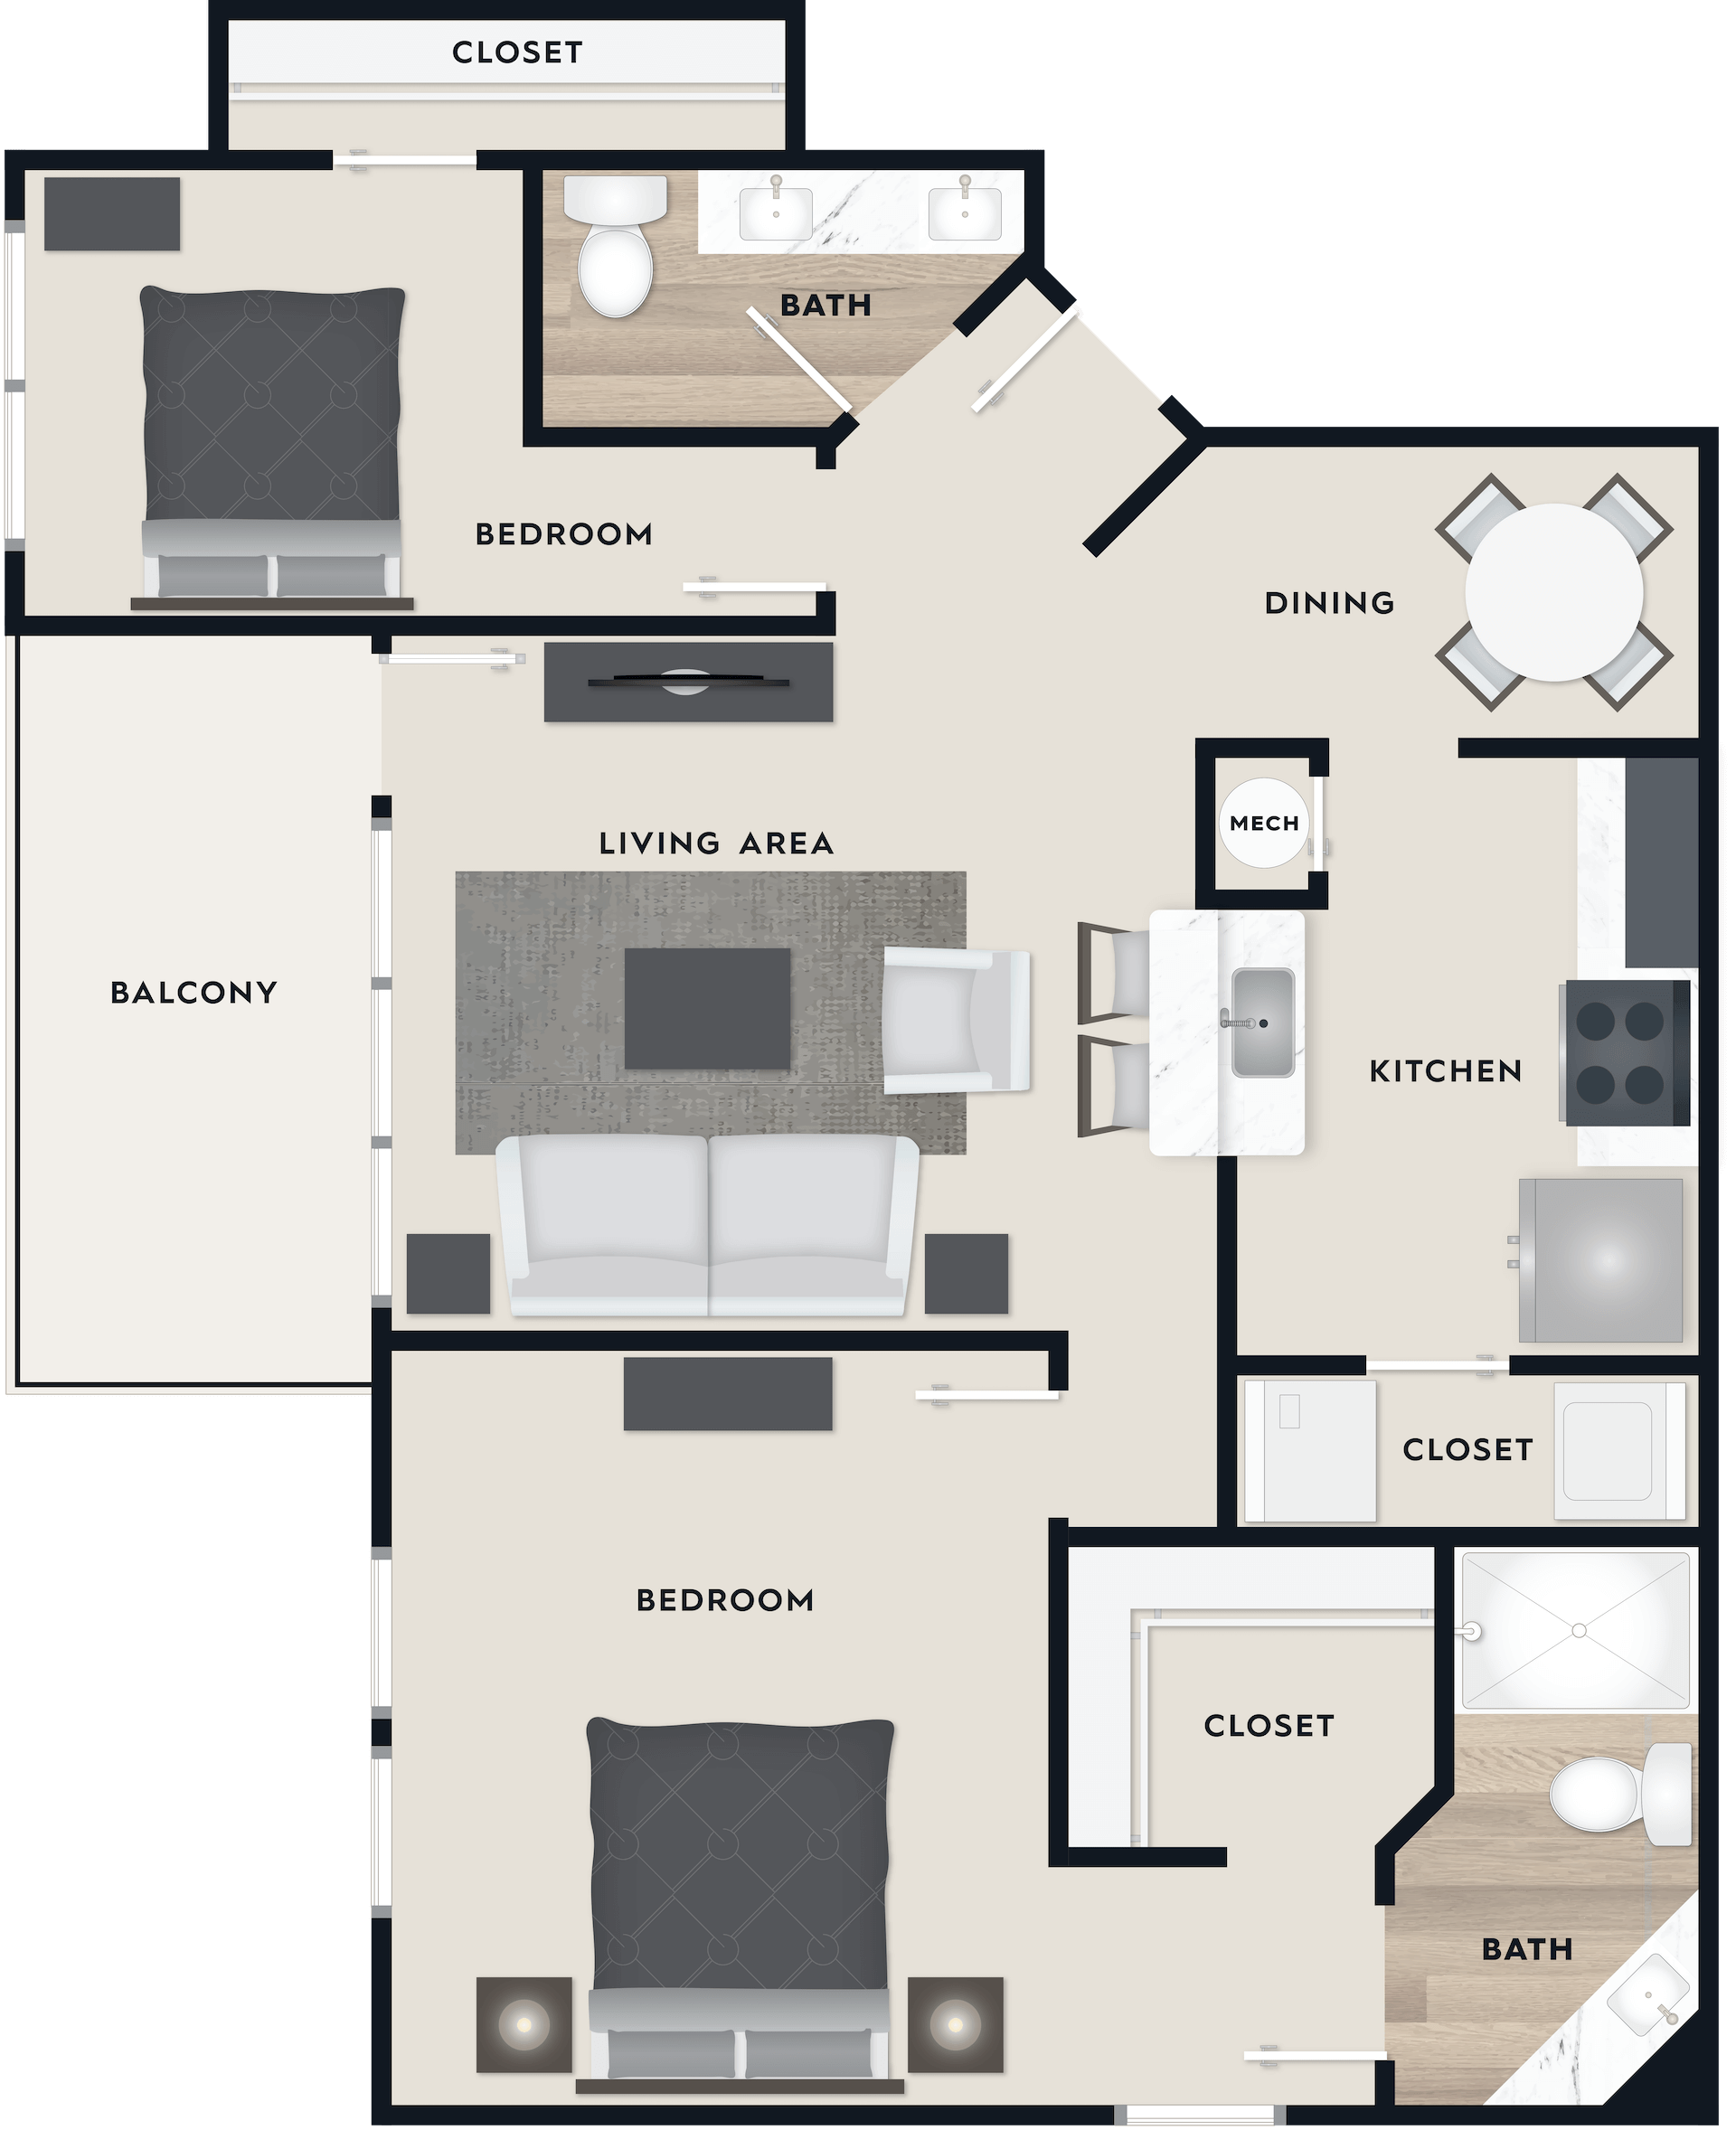 B3 floor plan, 1,244 square feet, 2 beds, 2 baths with a balcony